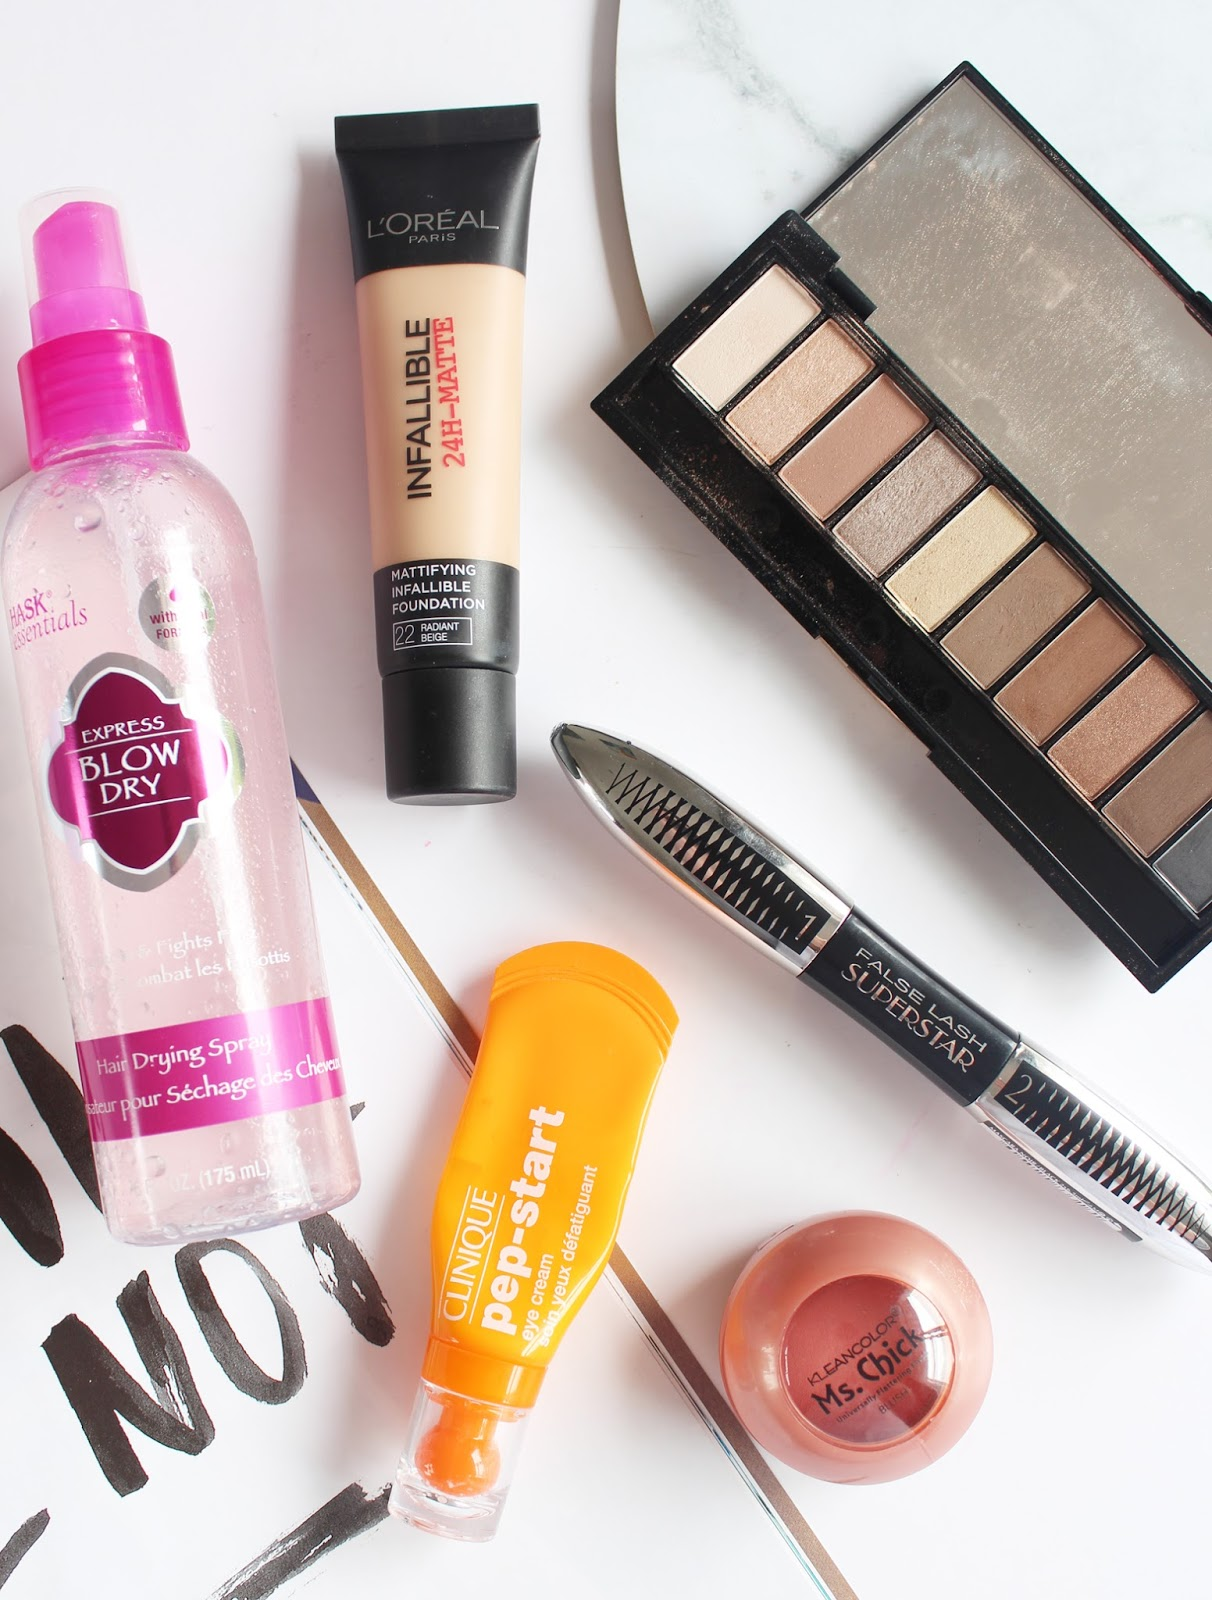 MOST LOVED | February '16 - Hask Essentials, L'Oreal, Kleancolor + Clinique - CassandraMyee